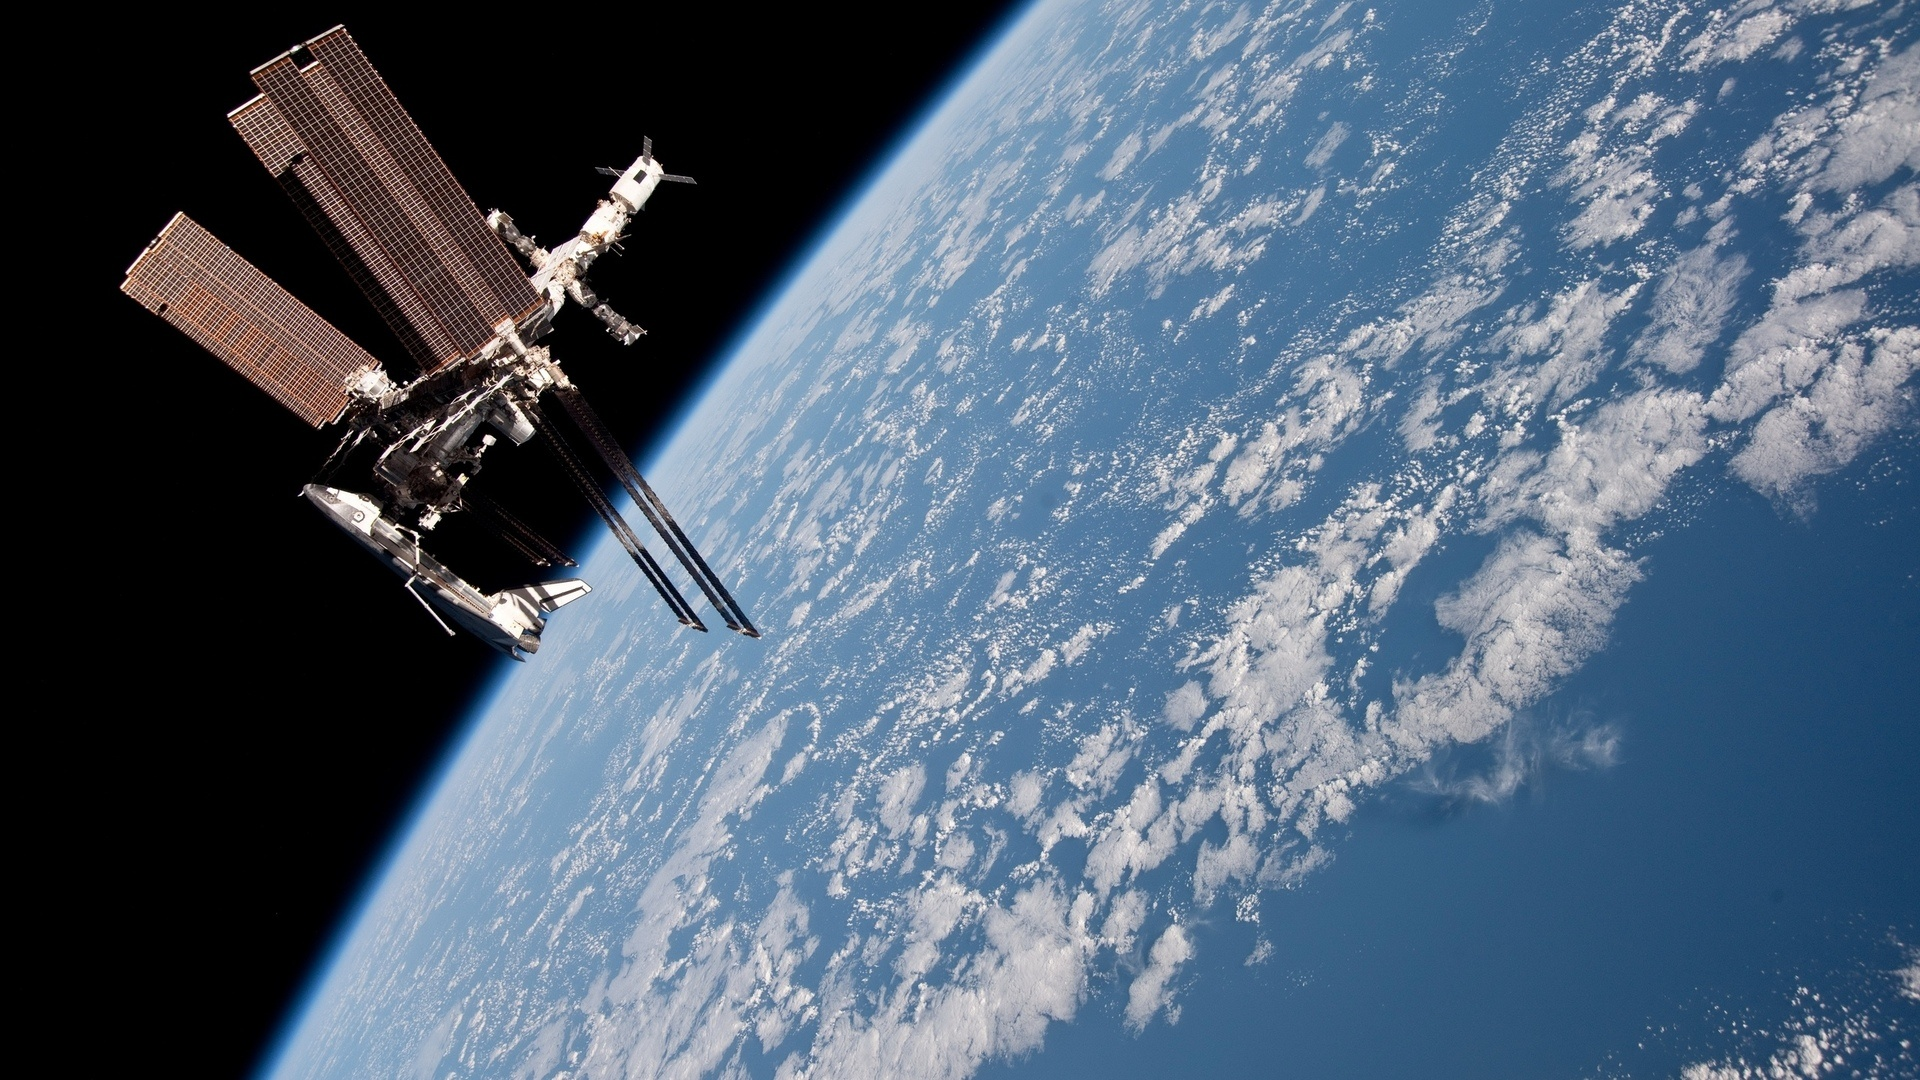 Space Station cool wallpaper